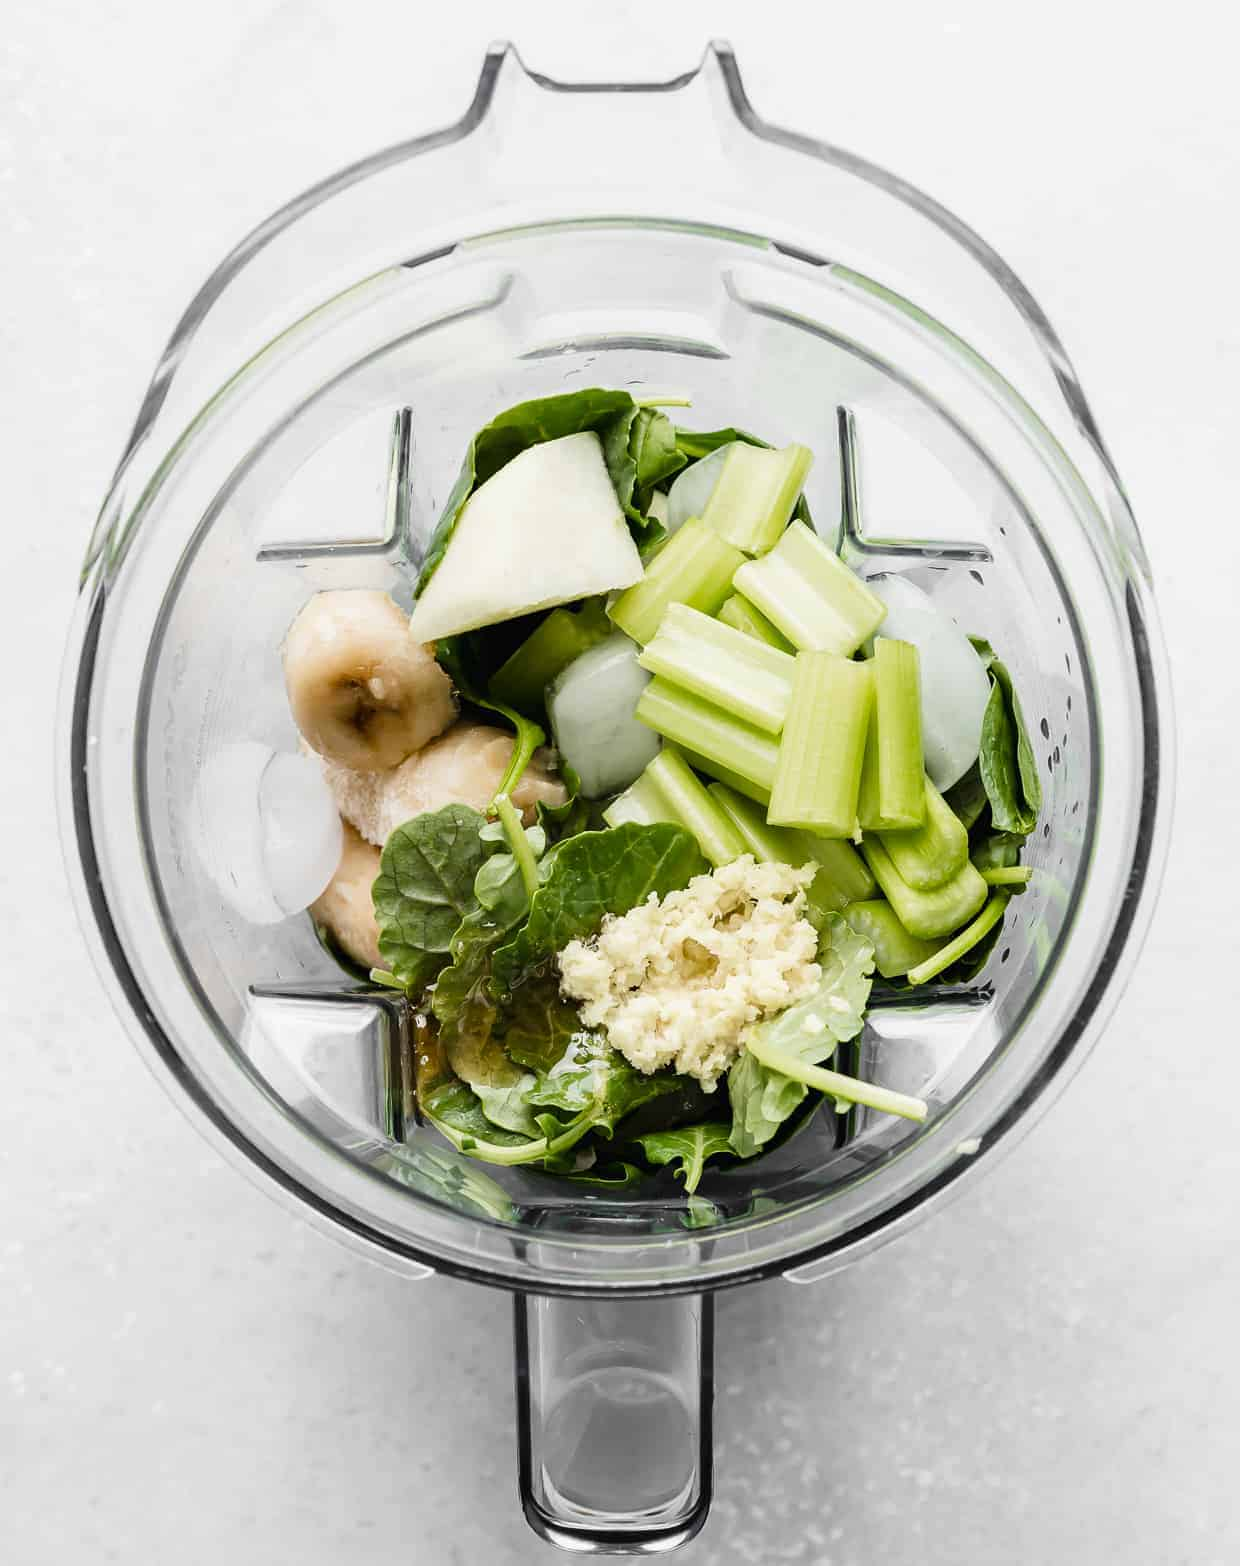 Ingredients used to make a celery smoothie in a blender.